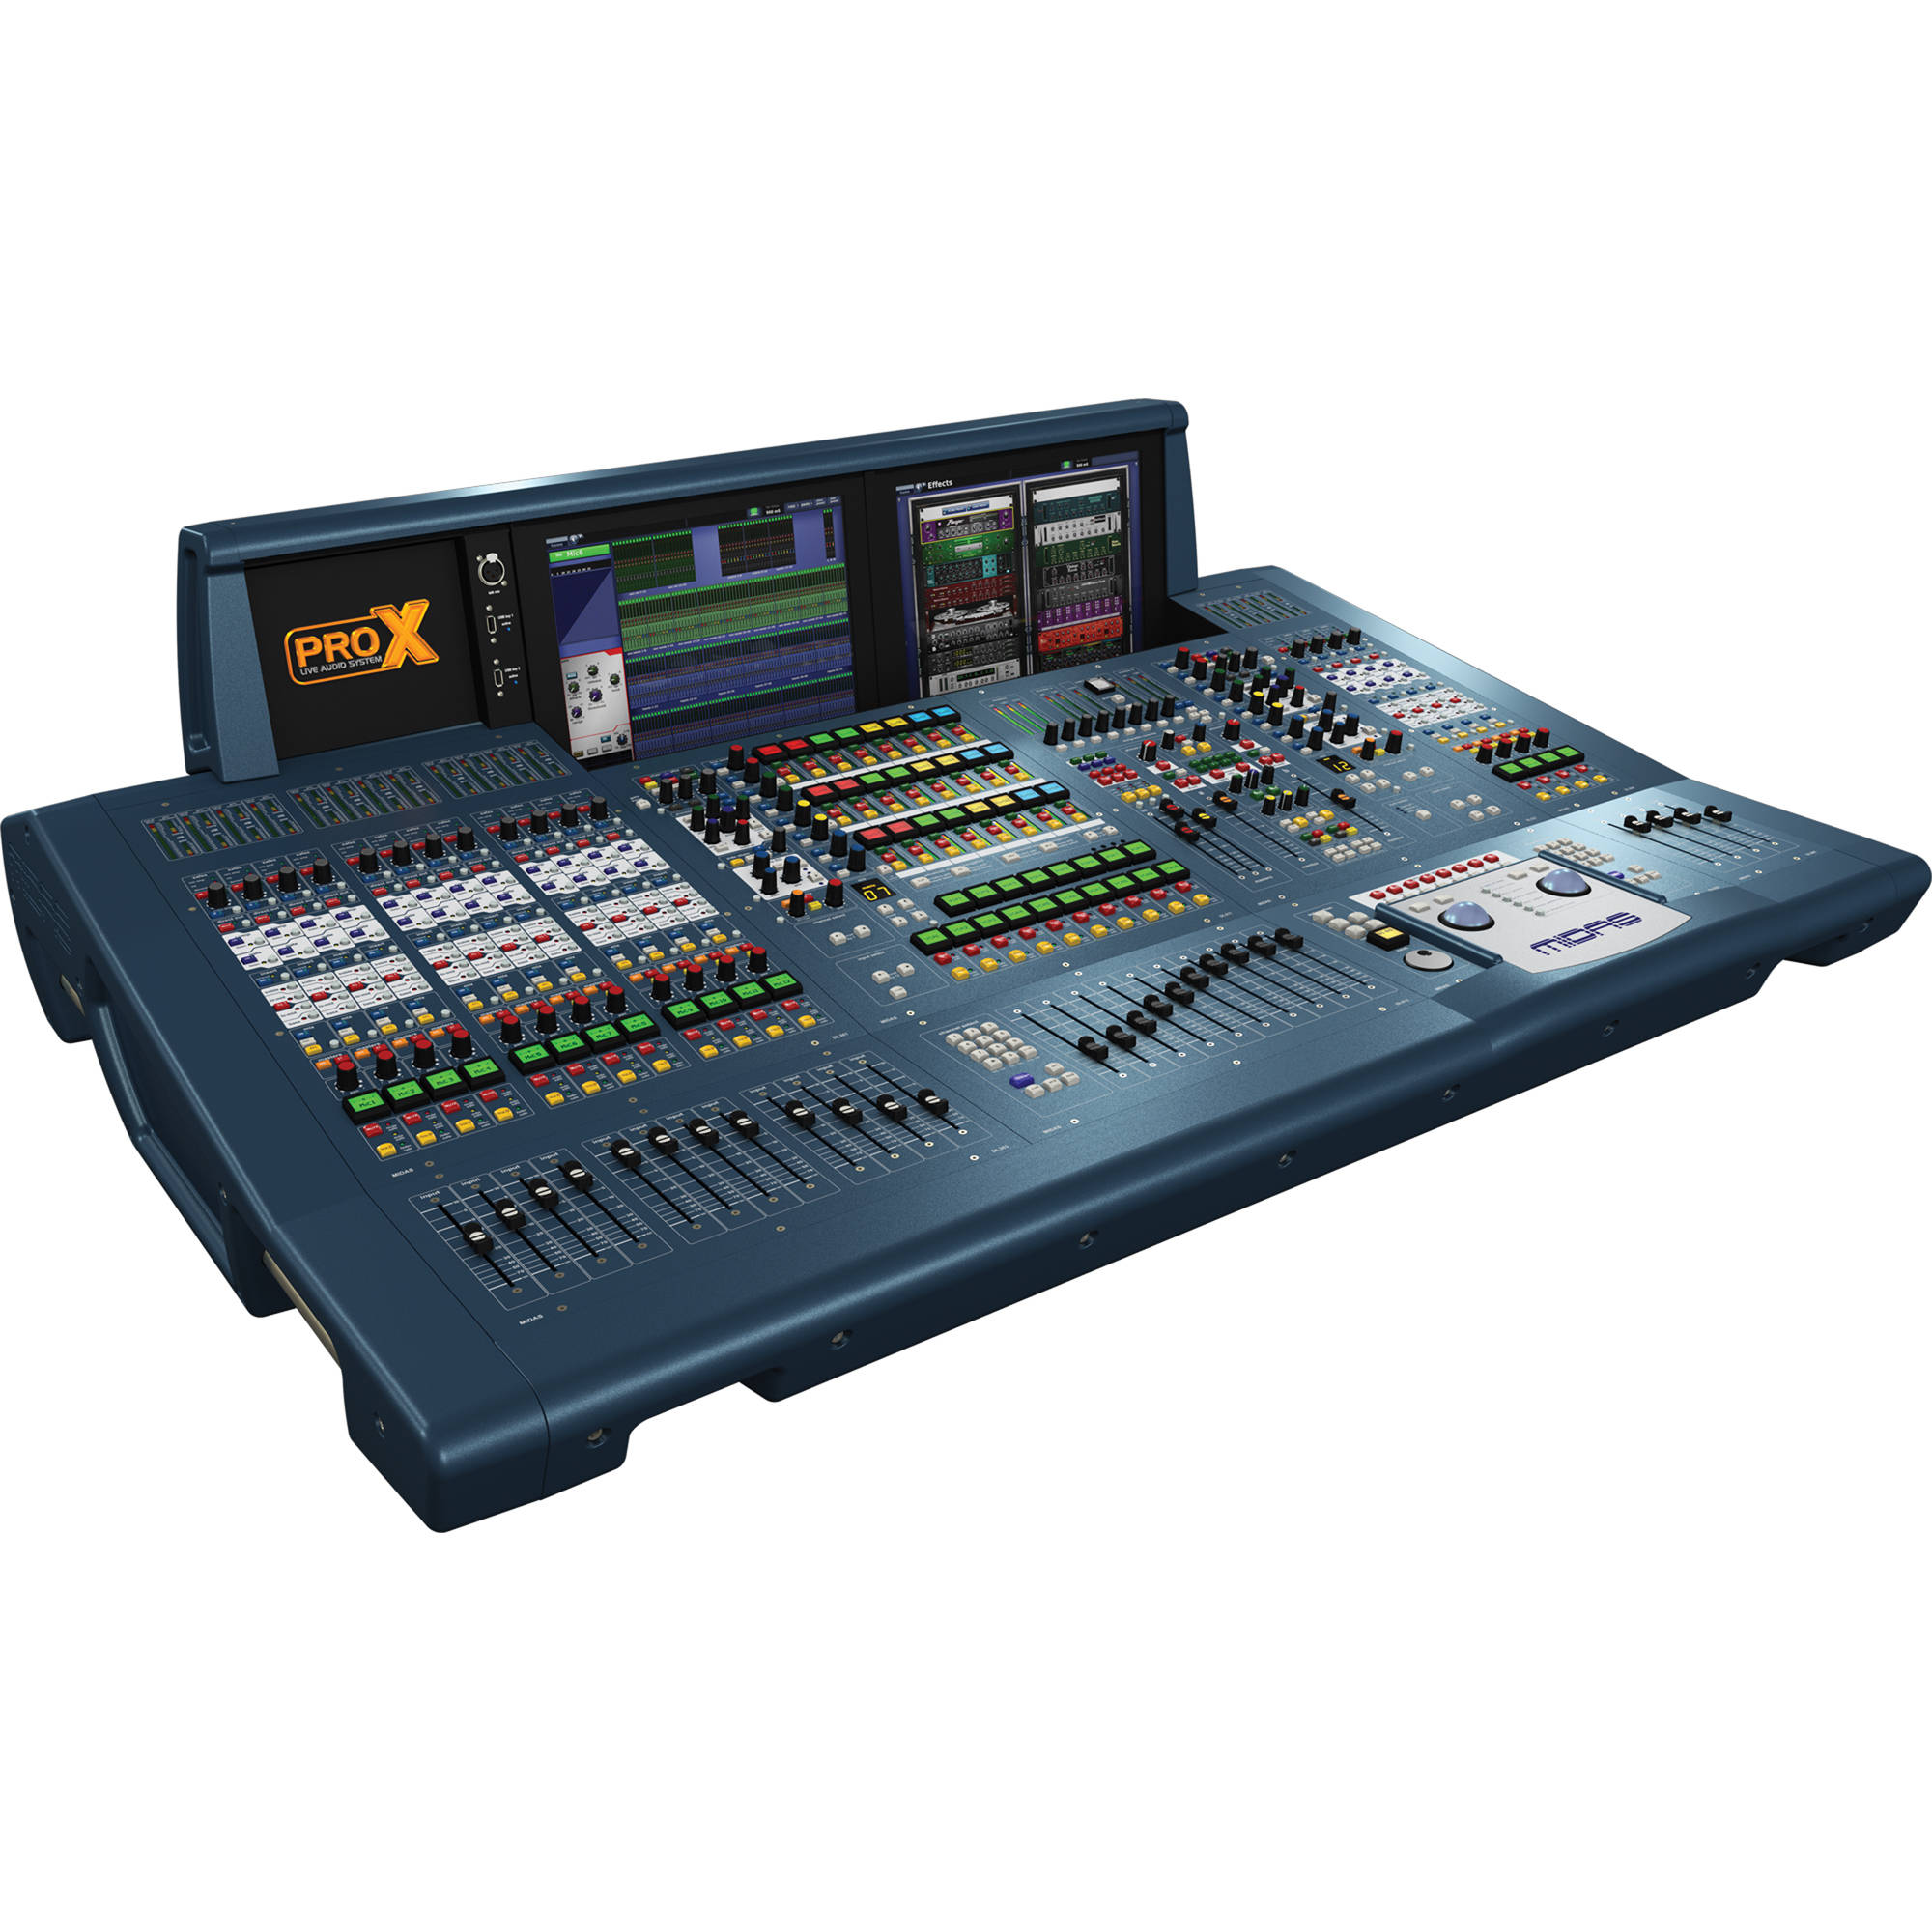 Midas Pro X Cc Ip Series Live Digital Console Buy Integrated Electronics Analog And Circuit English 2nd Control Center Install